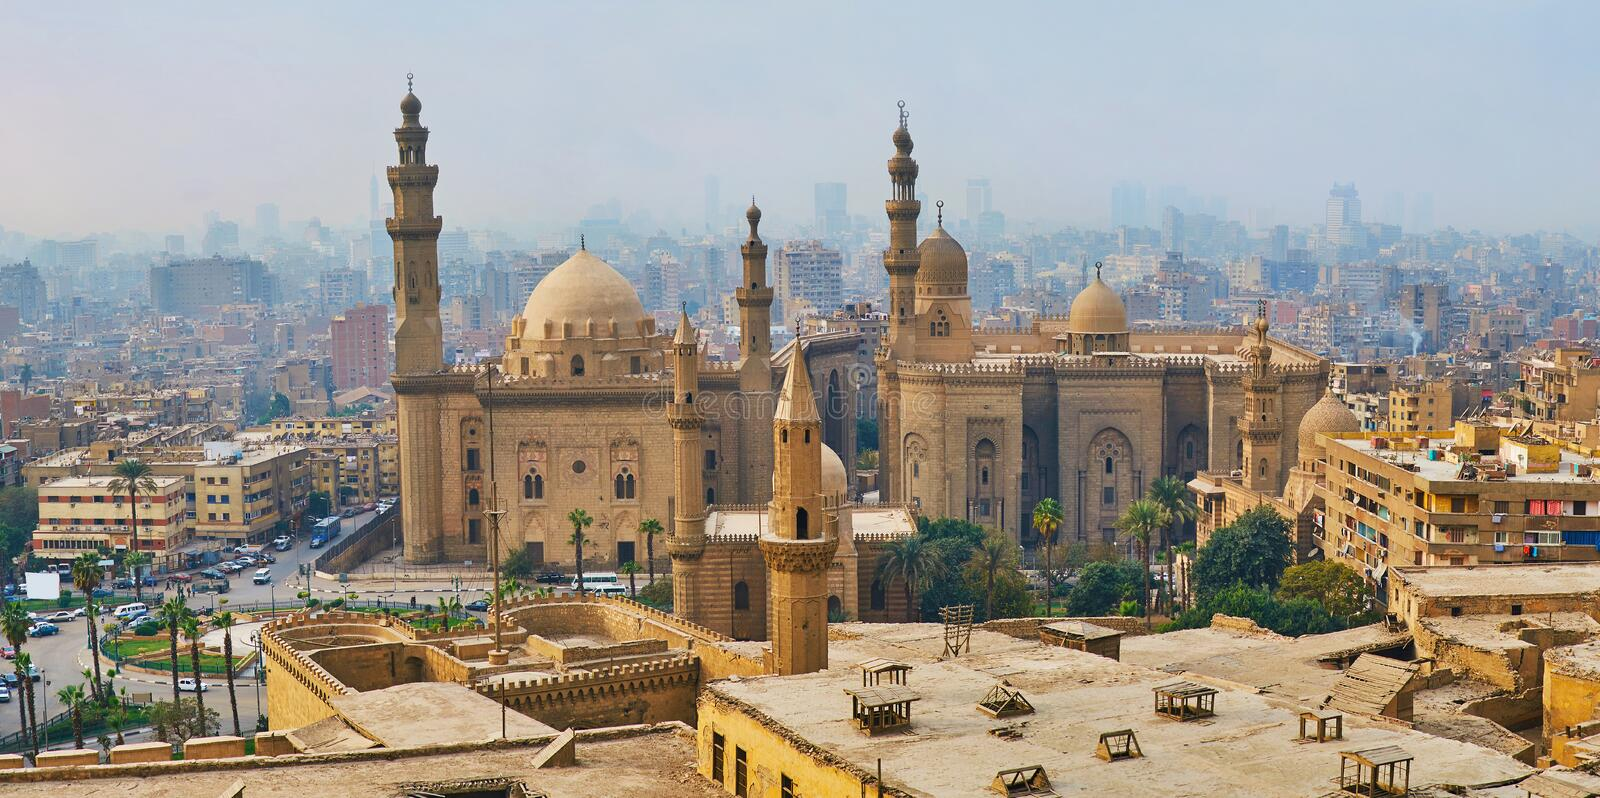 Foggy day in Cairo, Egypt. Winter fog covers the old city, hides its old residential buildings, slums and winding streets, only the giant medieval mosques of Al royalty free stock image